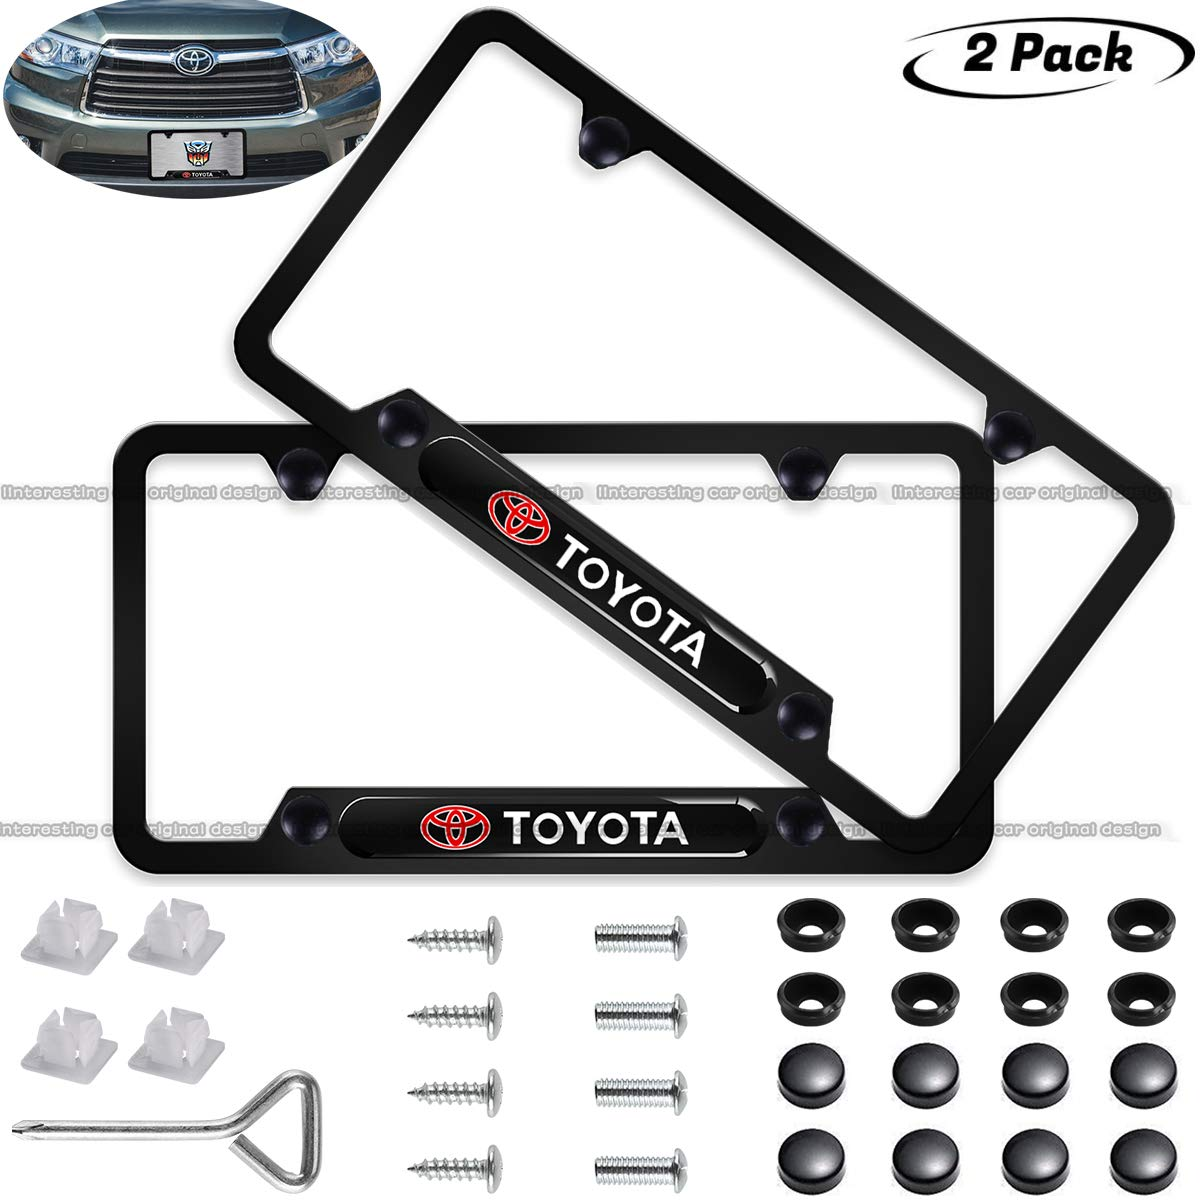 2-Pieces High-Grade License Plate Frame for Toyota,Applicable to US Standard car License Frame, (Toyota)